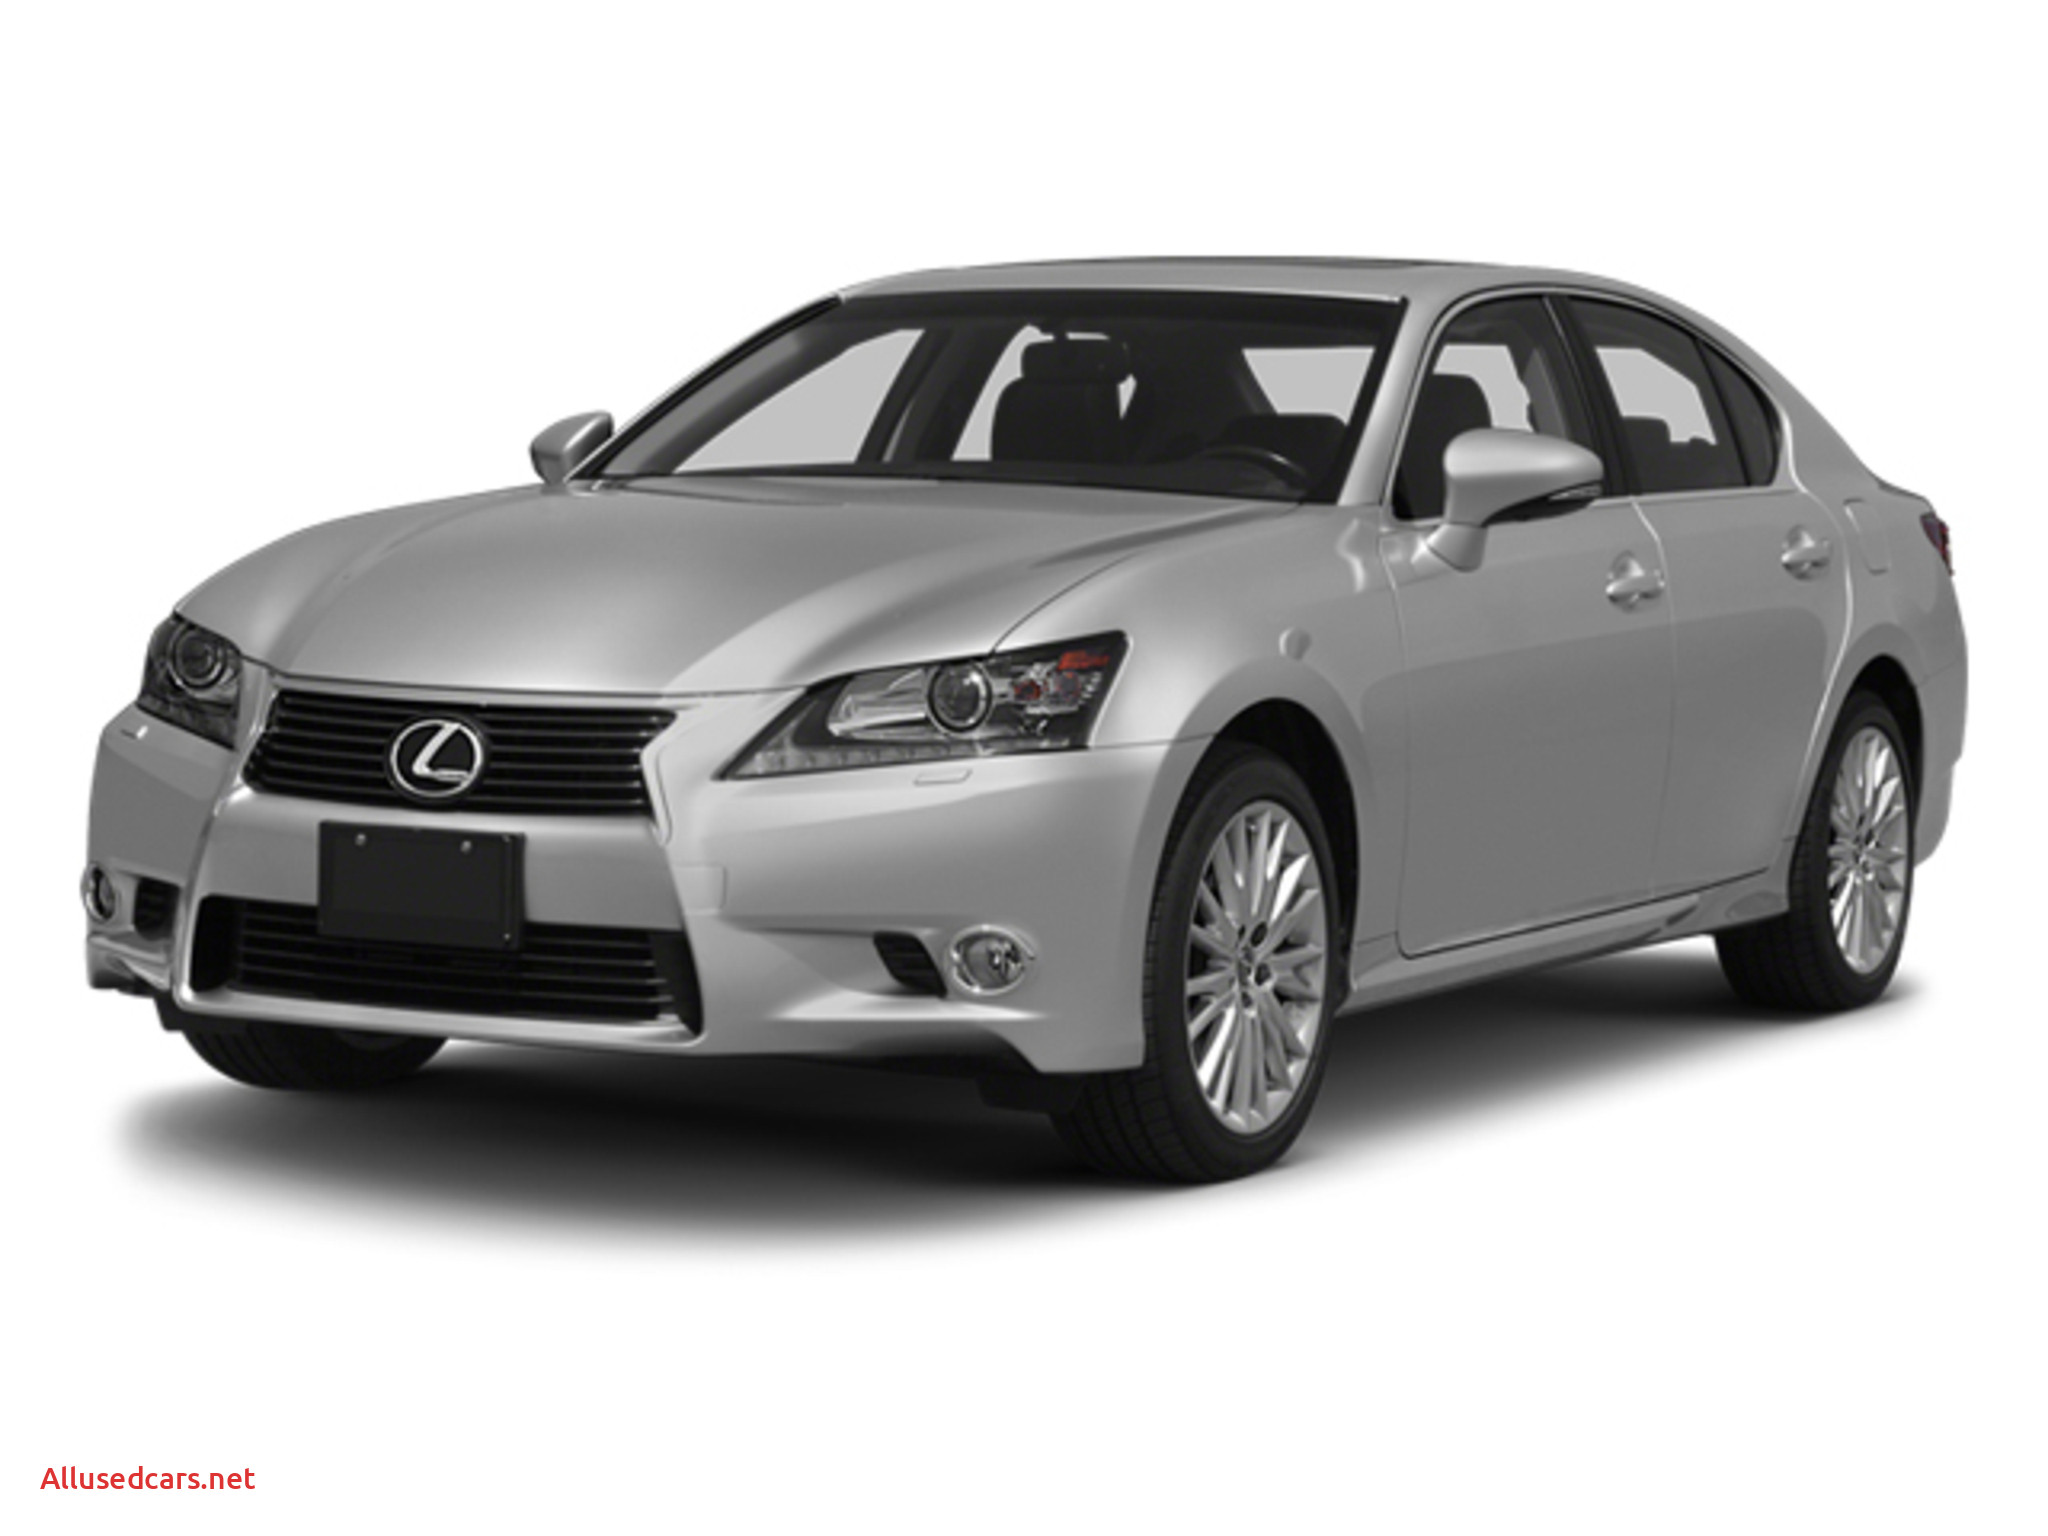 New 2013 Lexus Gs 350